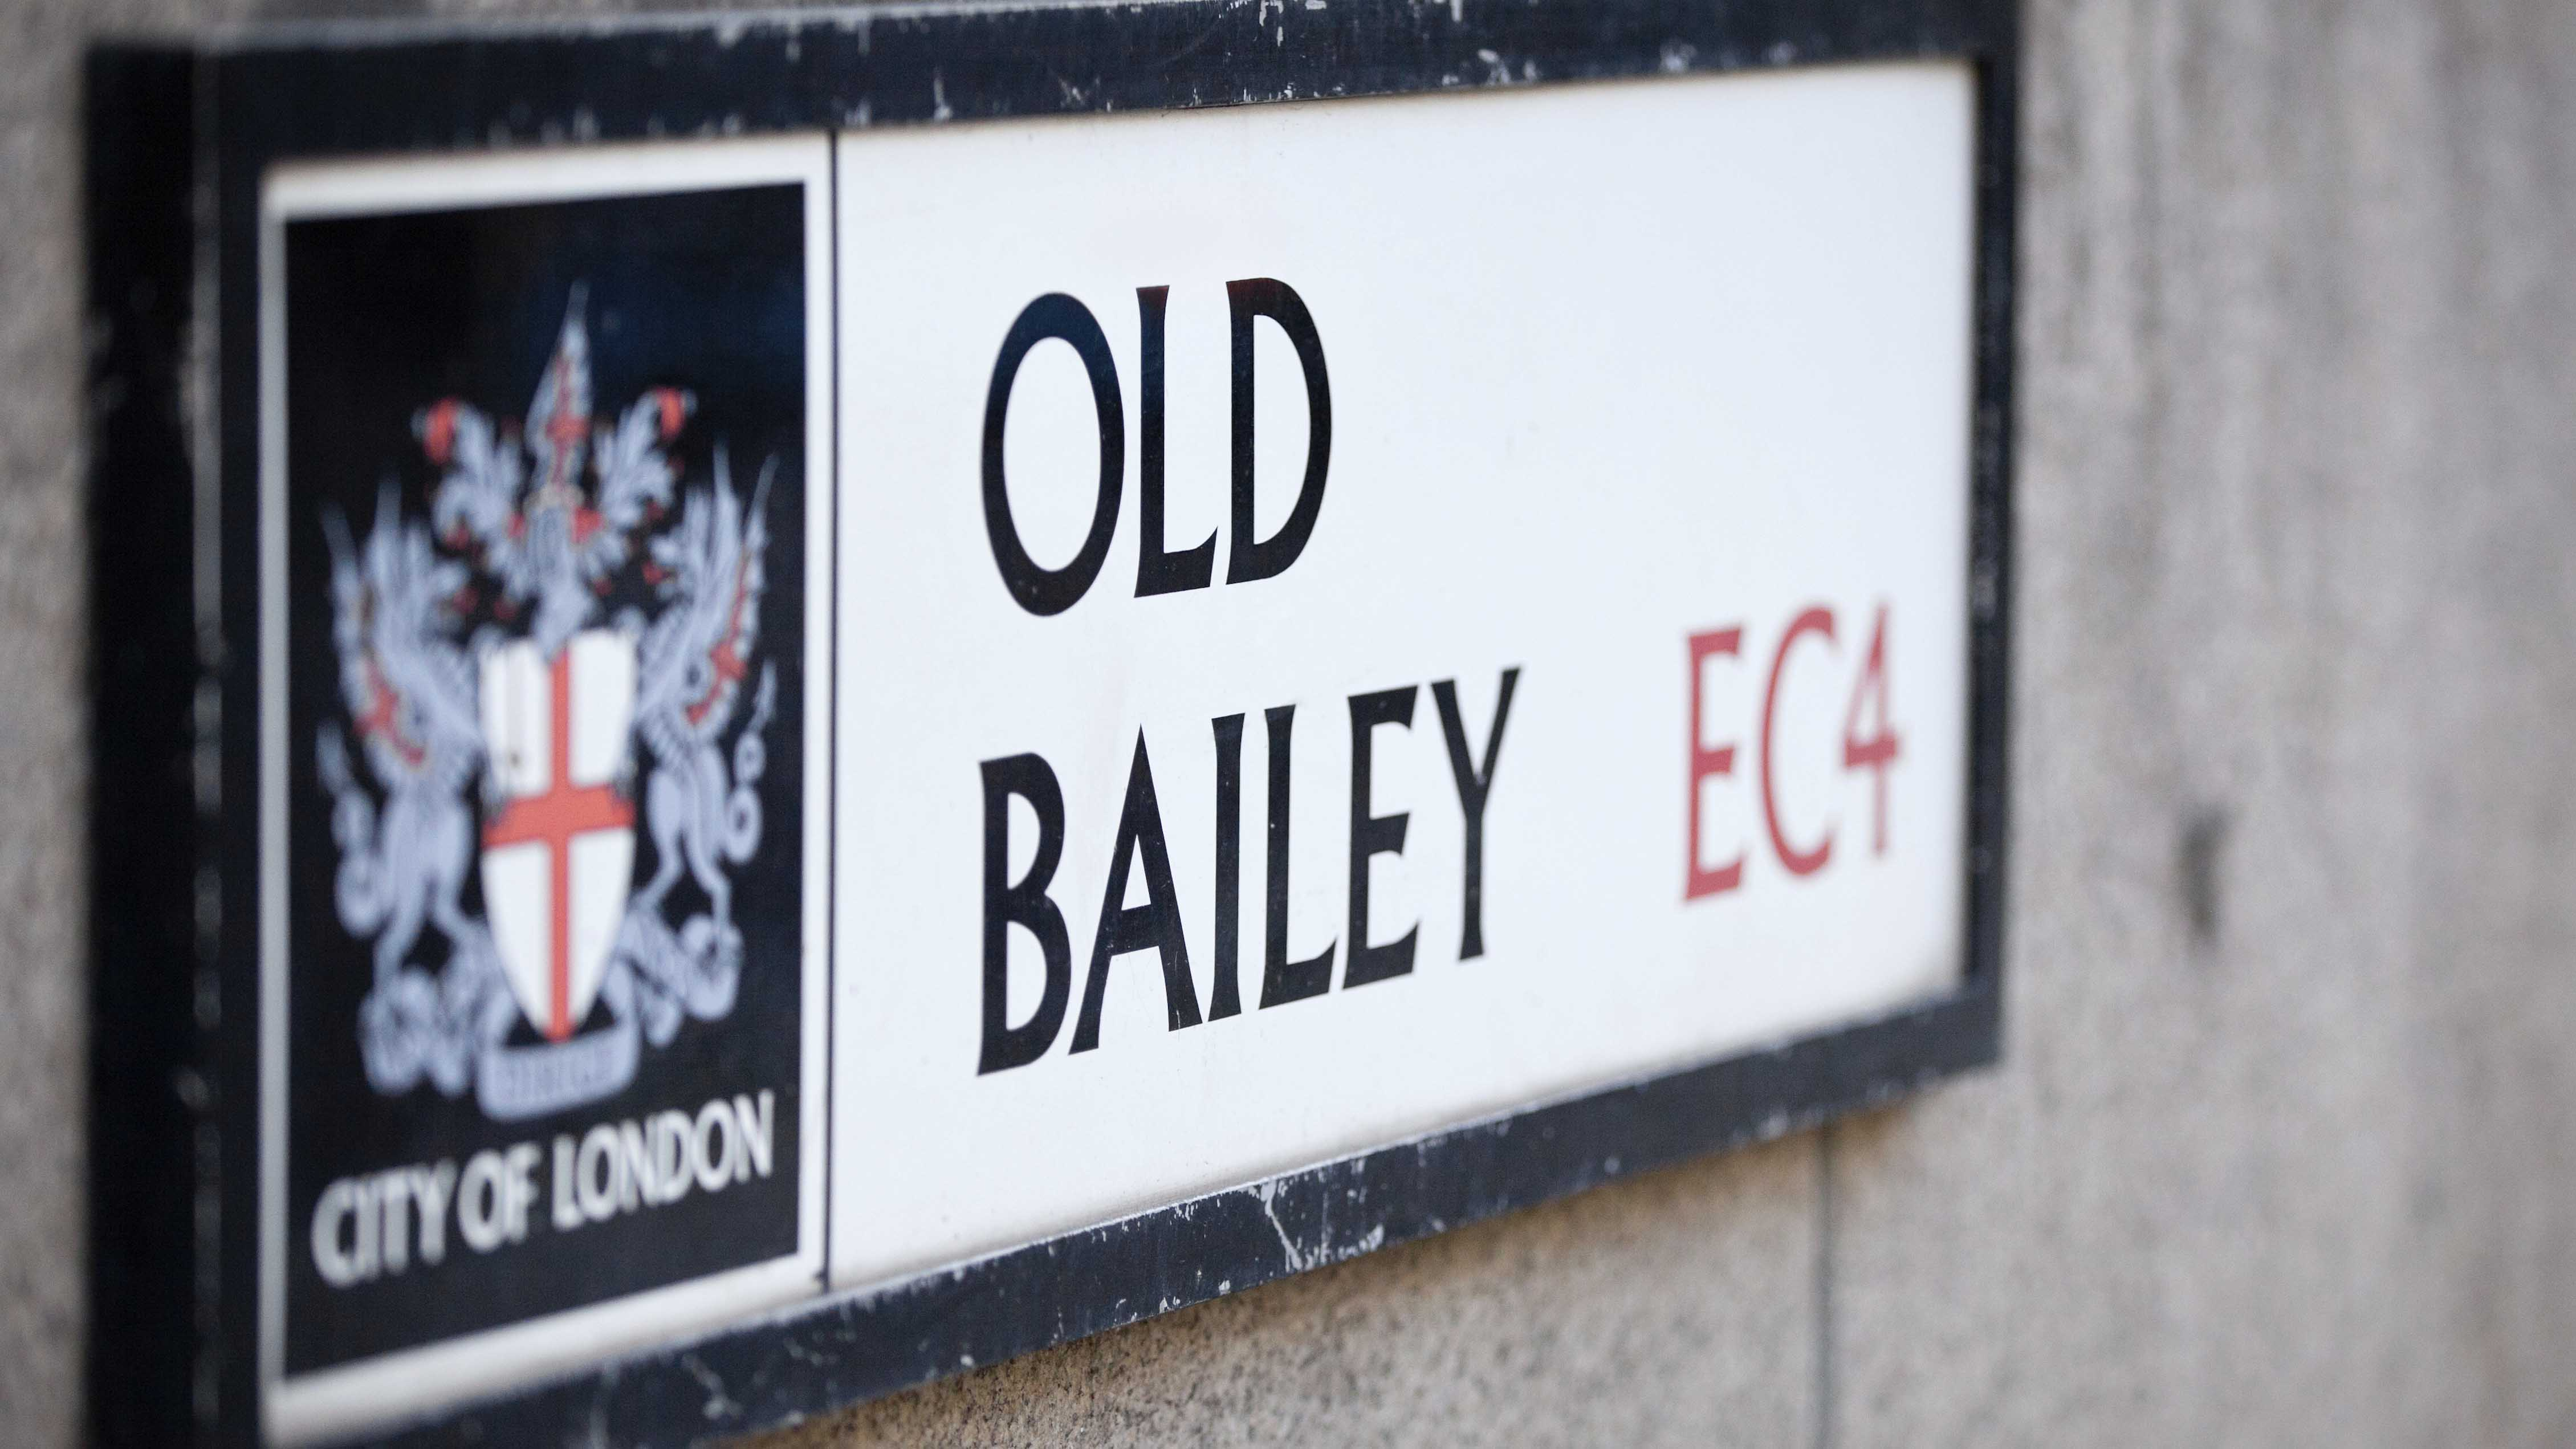 Old Bailey1080